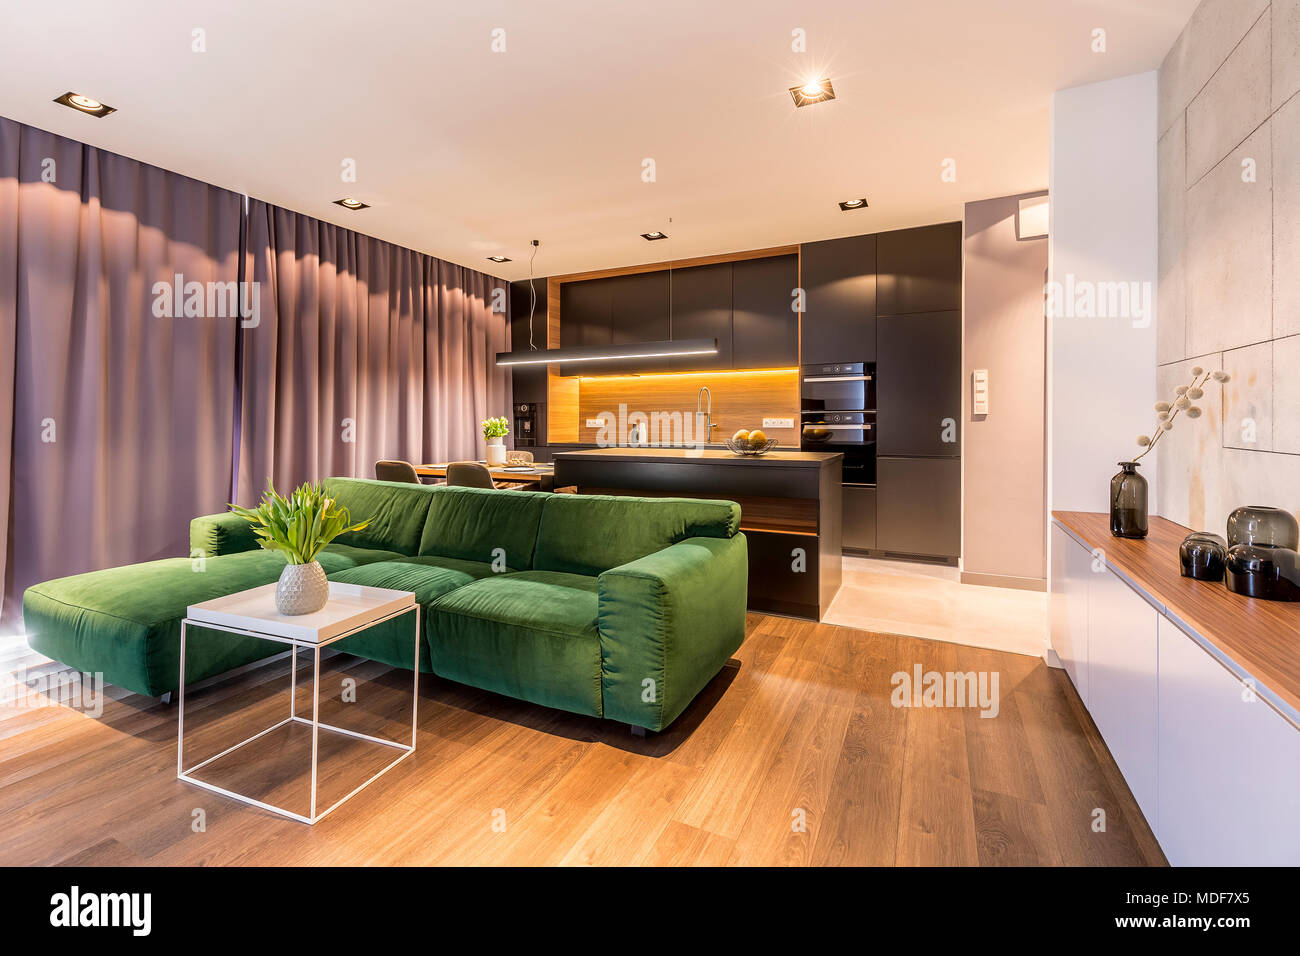 Oak Trendy White Desk Concepts Open space apartment interior with white table near green corner sofa in  front of a black, glossy kitchen with dining table